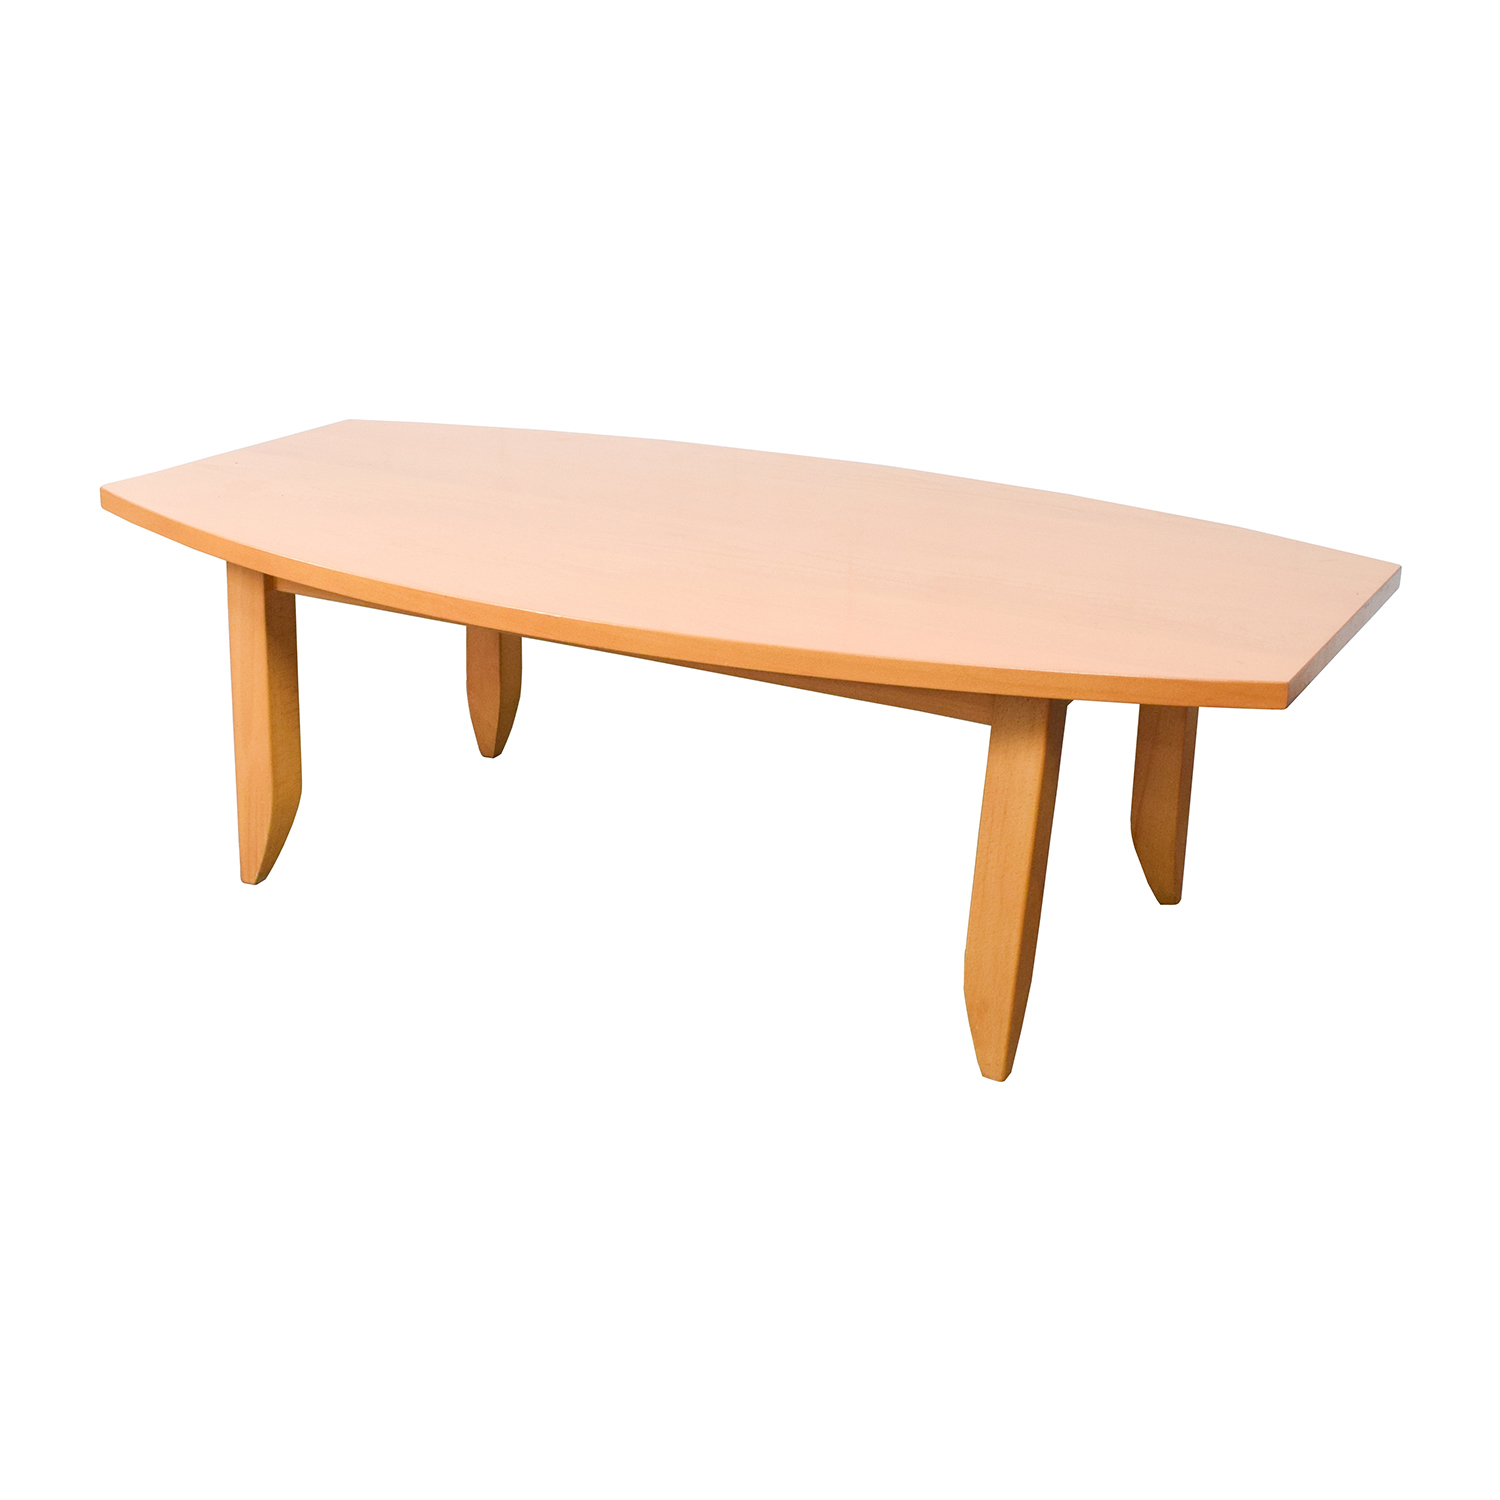 Ikea Coffee Table Second Hand: IKEA IKEA Boat Style Coffee Table / Tables